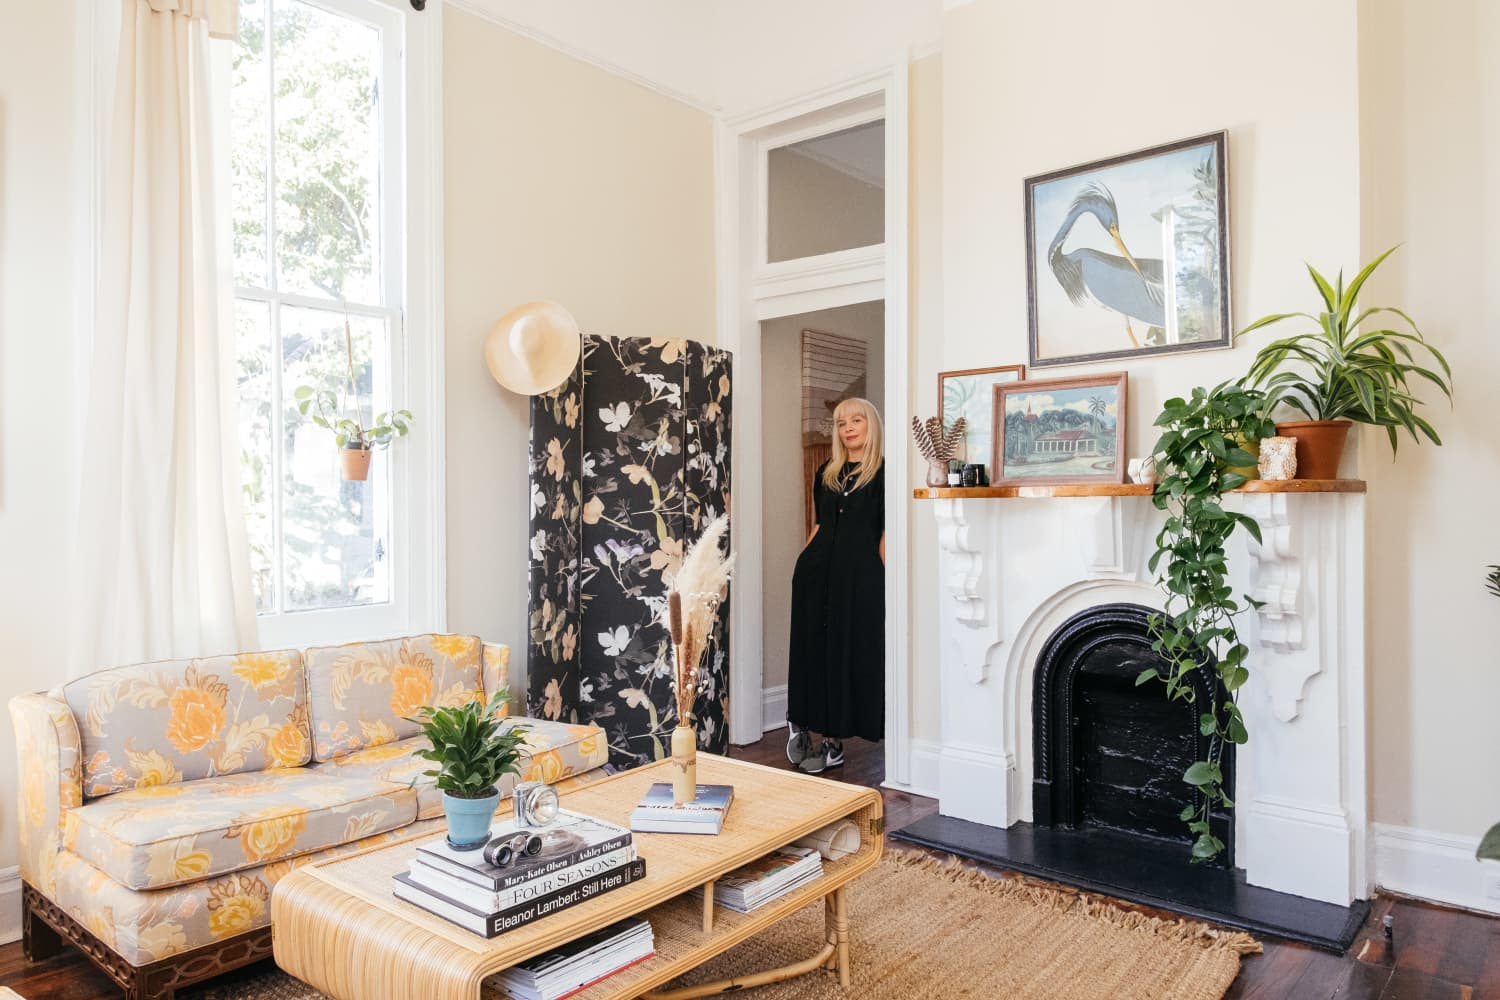 A New Orleans Rental Shotgun Is Dripping in Charm and Dried Florals